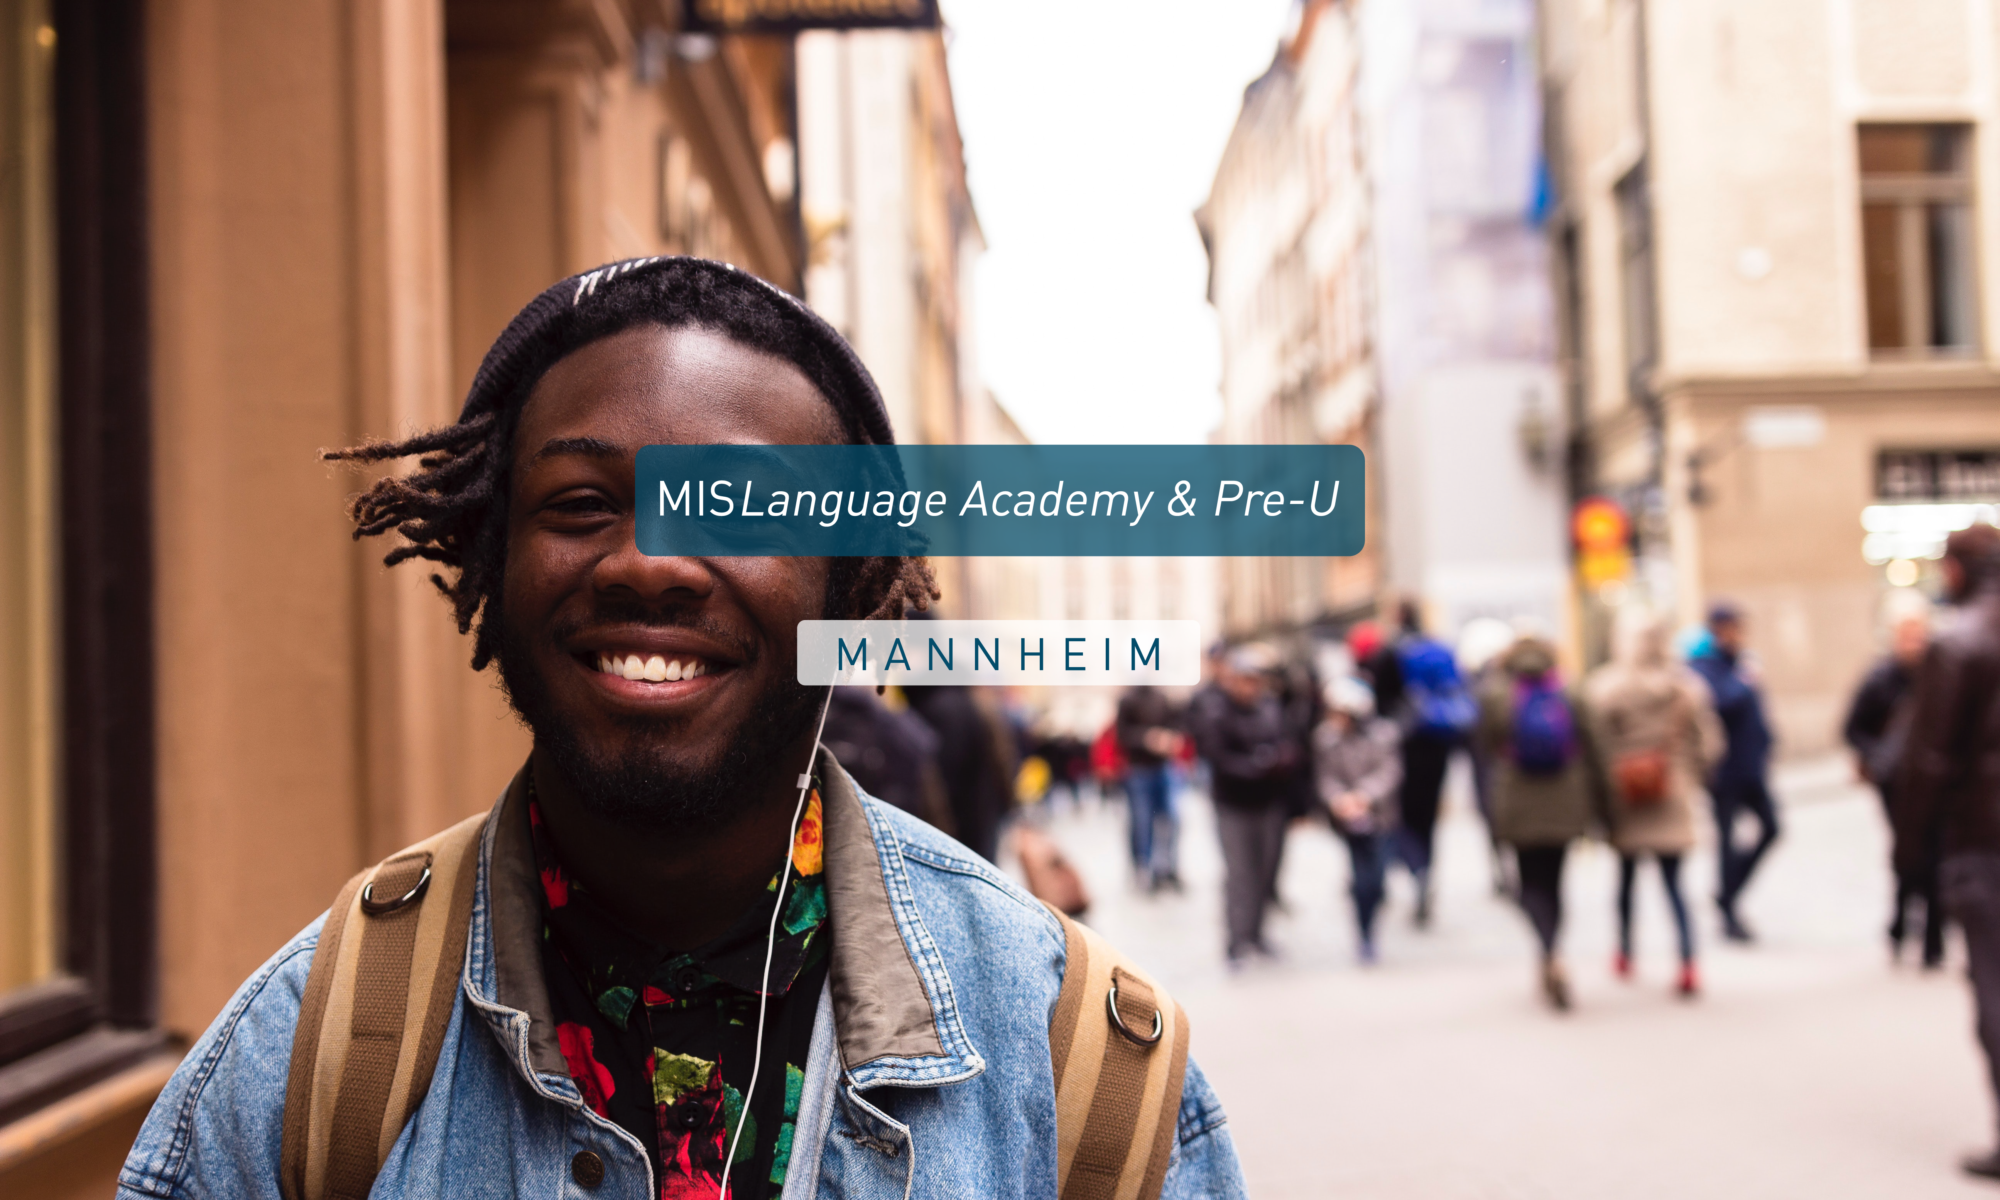 MIS Language Academy and Pre-U